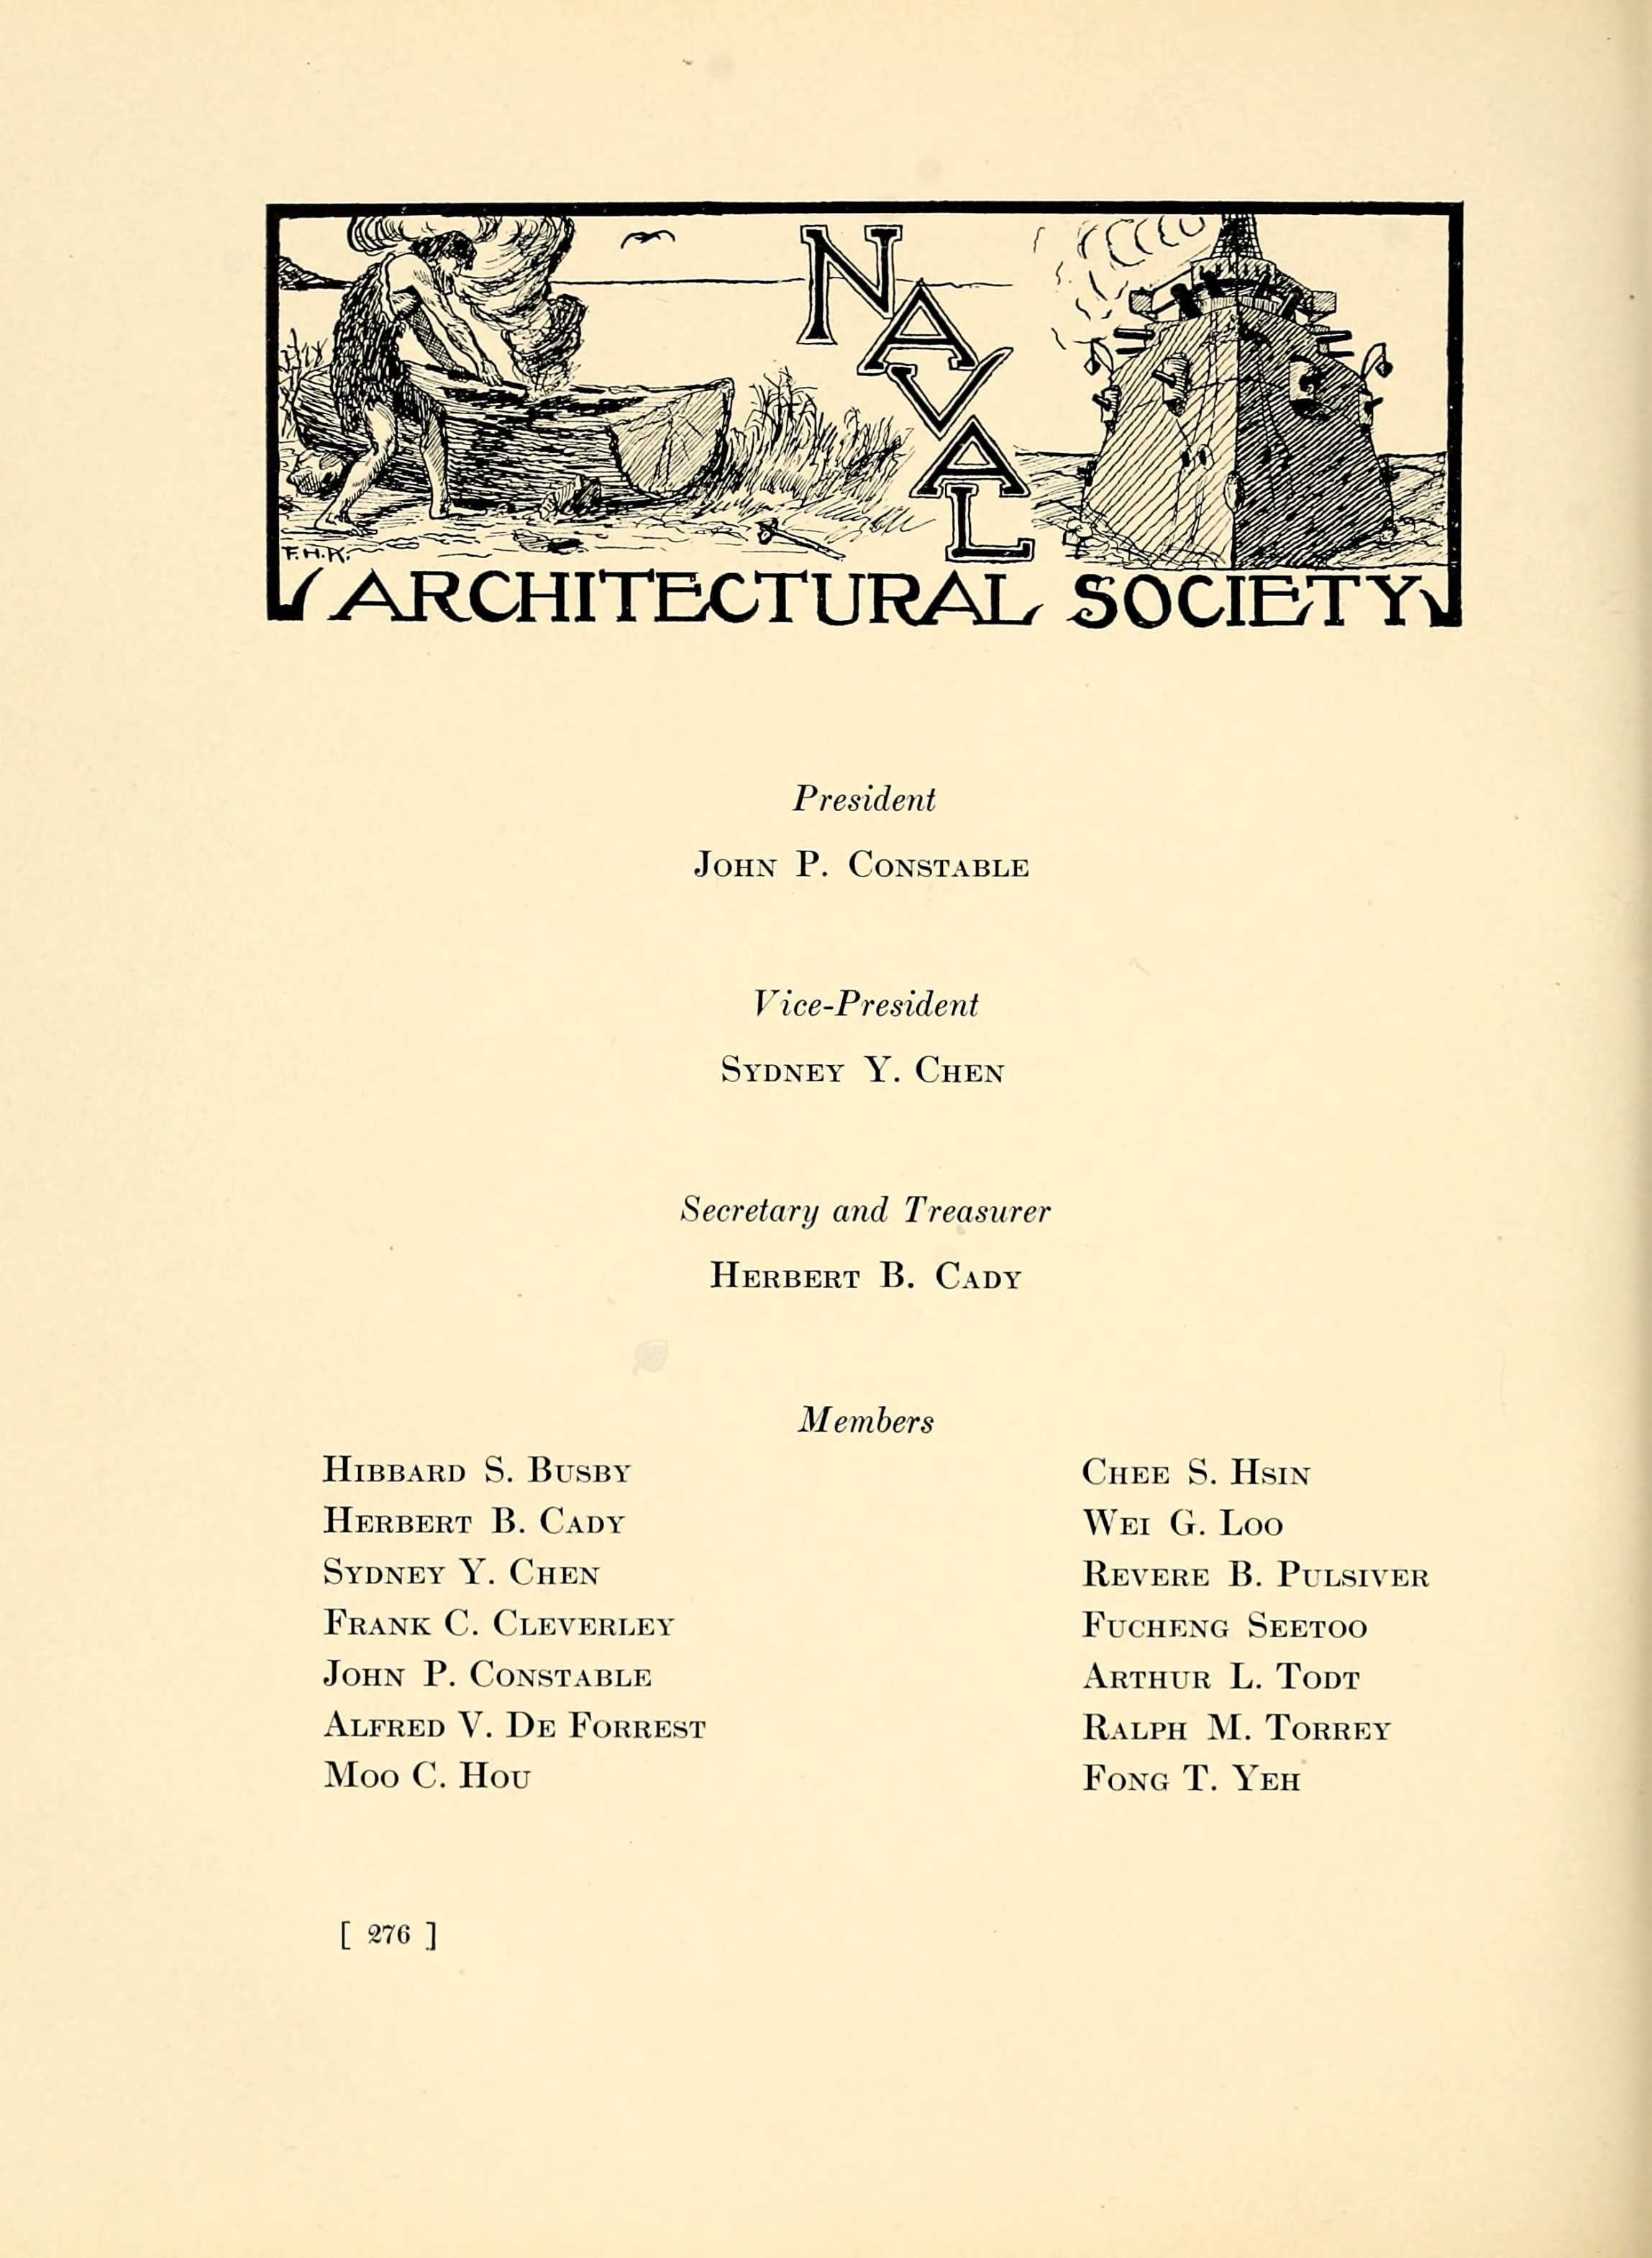 Naval Architectural Society for 1912. MIT Technique 1913.